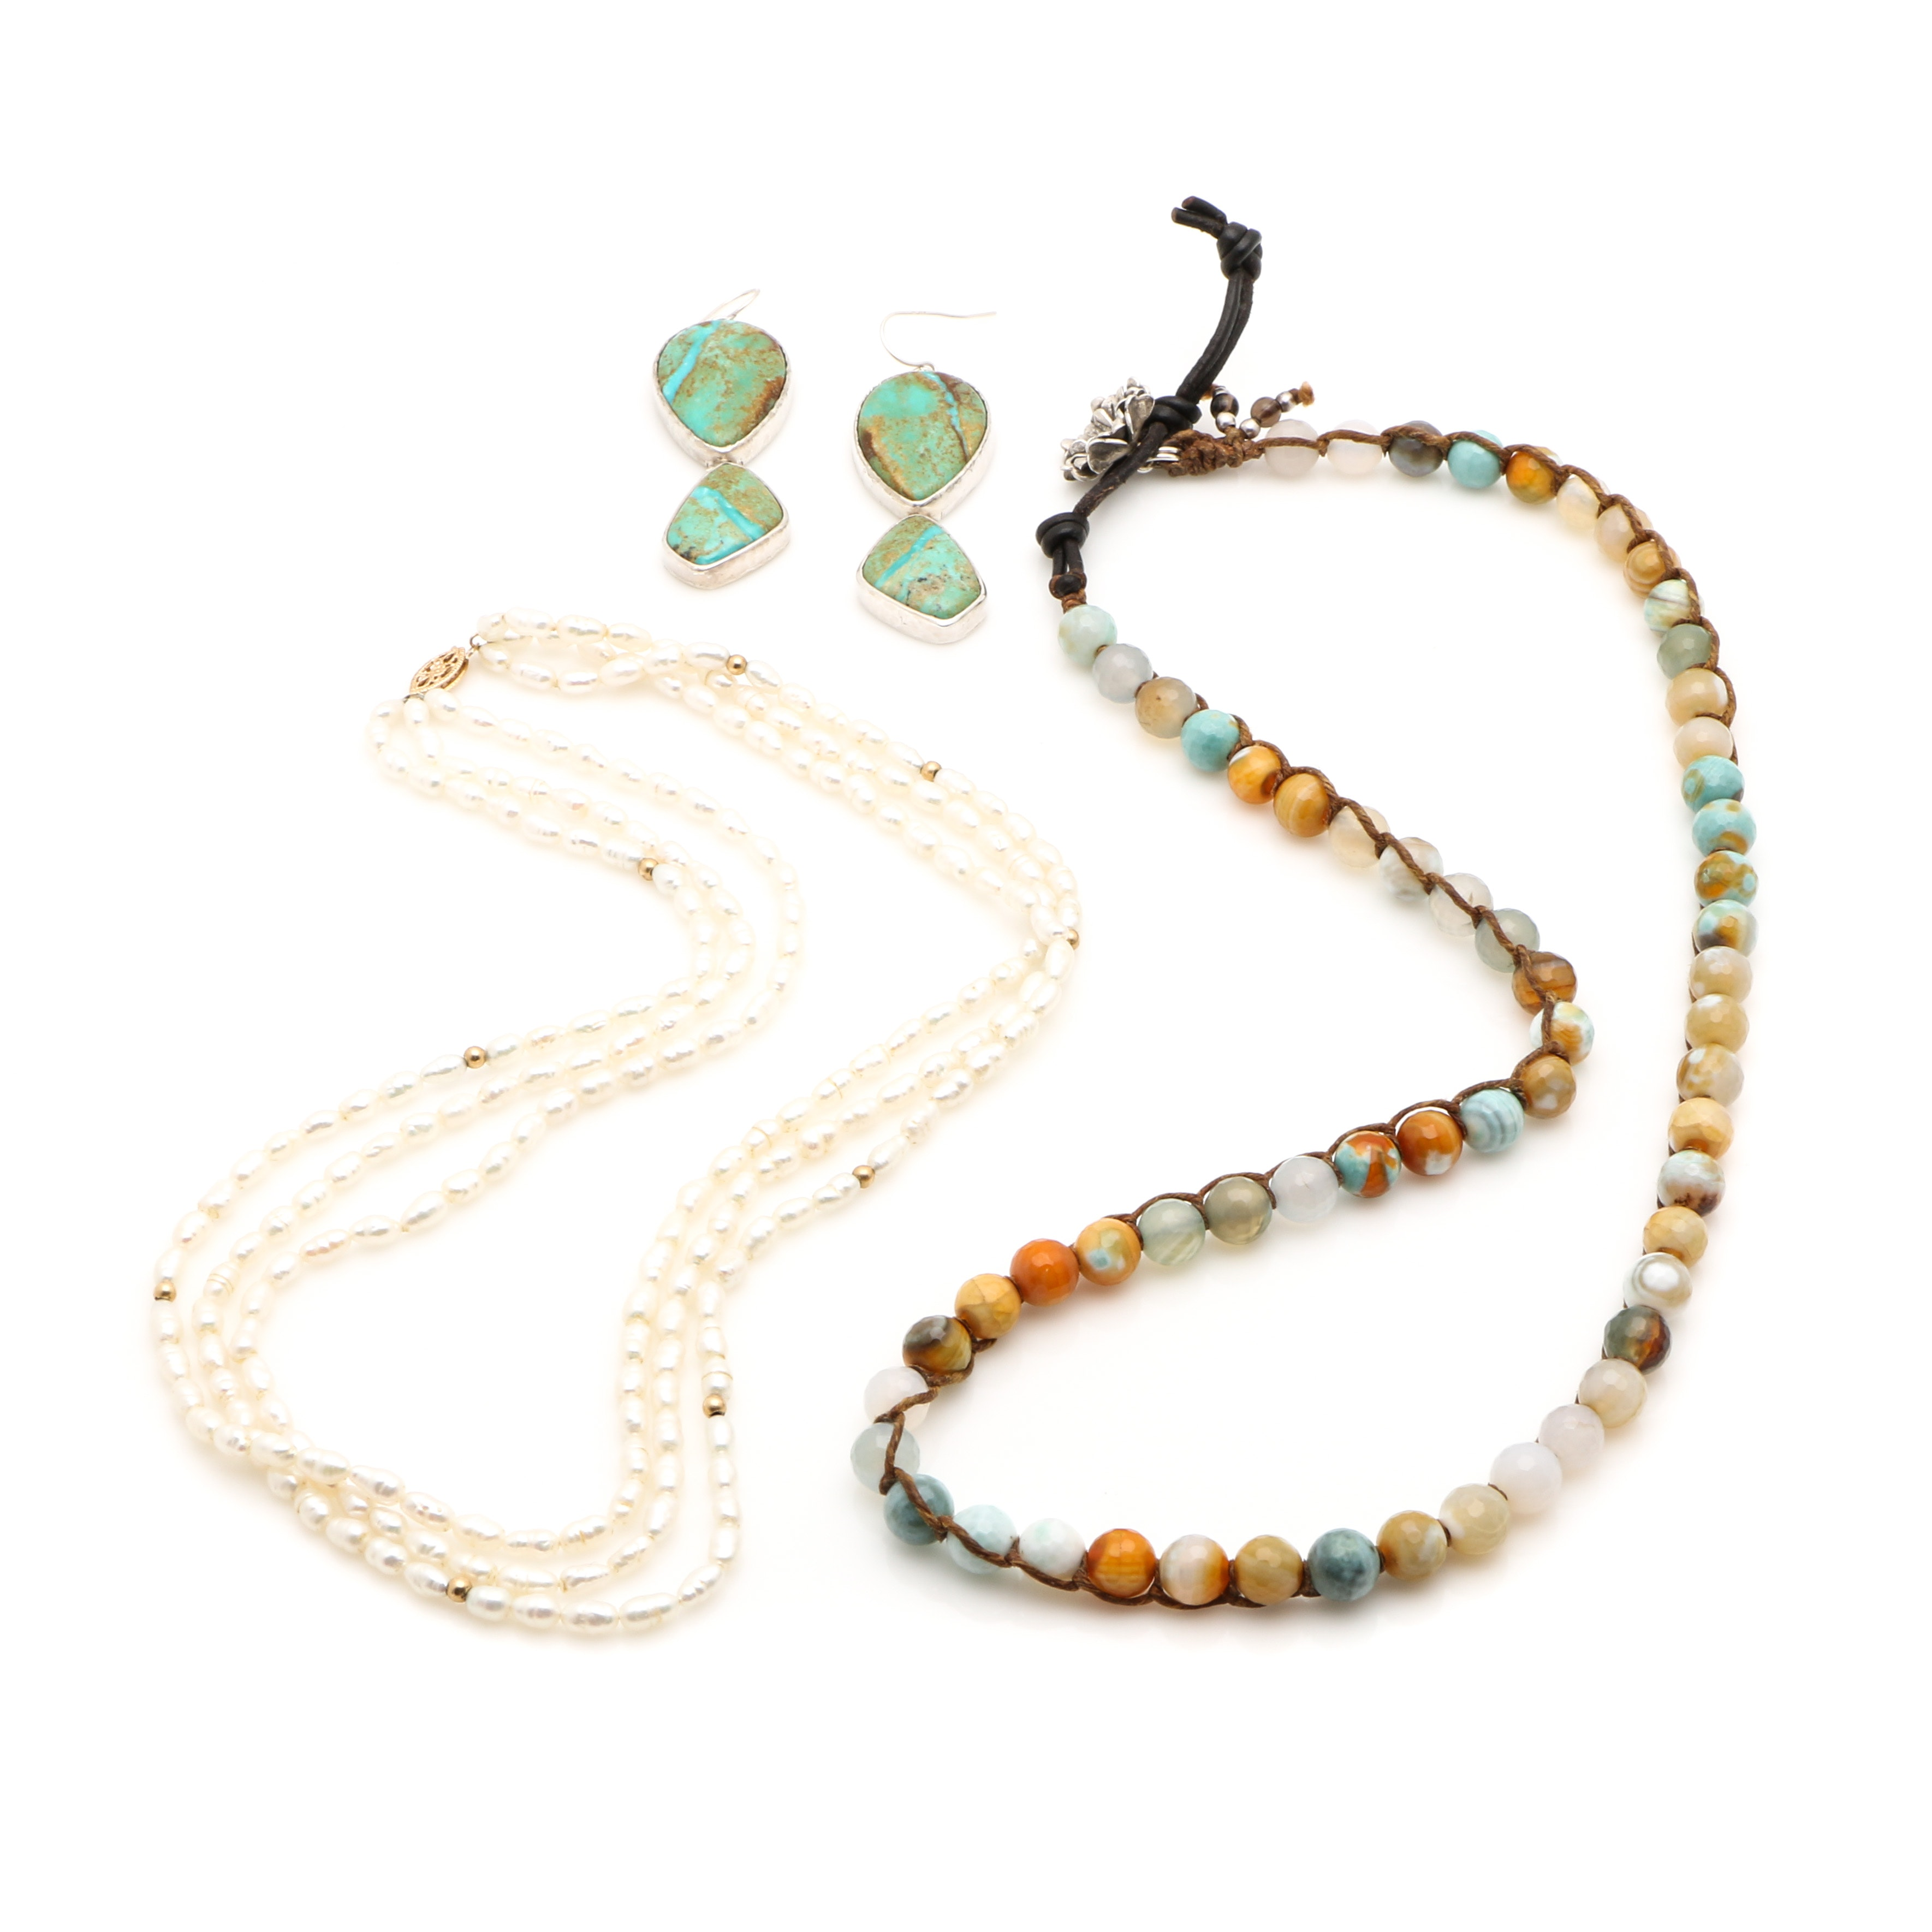 Gemstone Necklaces and Earrings with 14K Yellow Gold and Sterling Silver